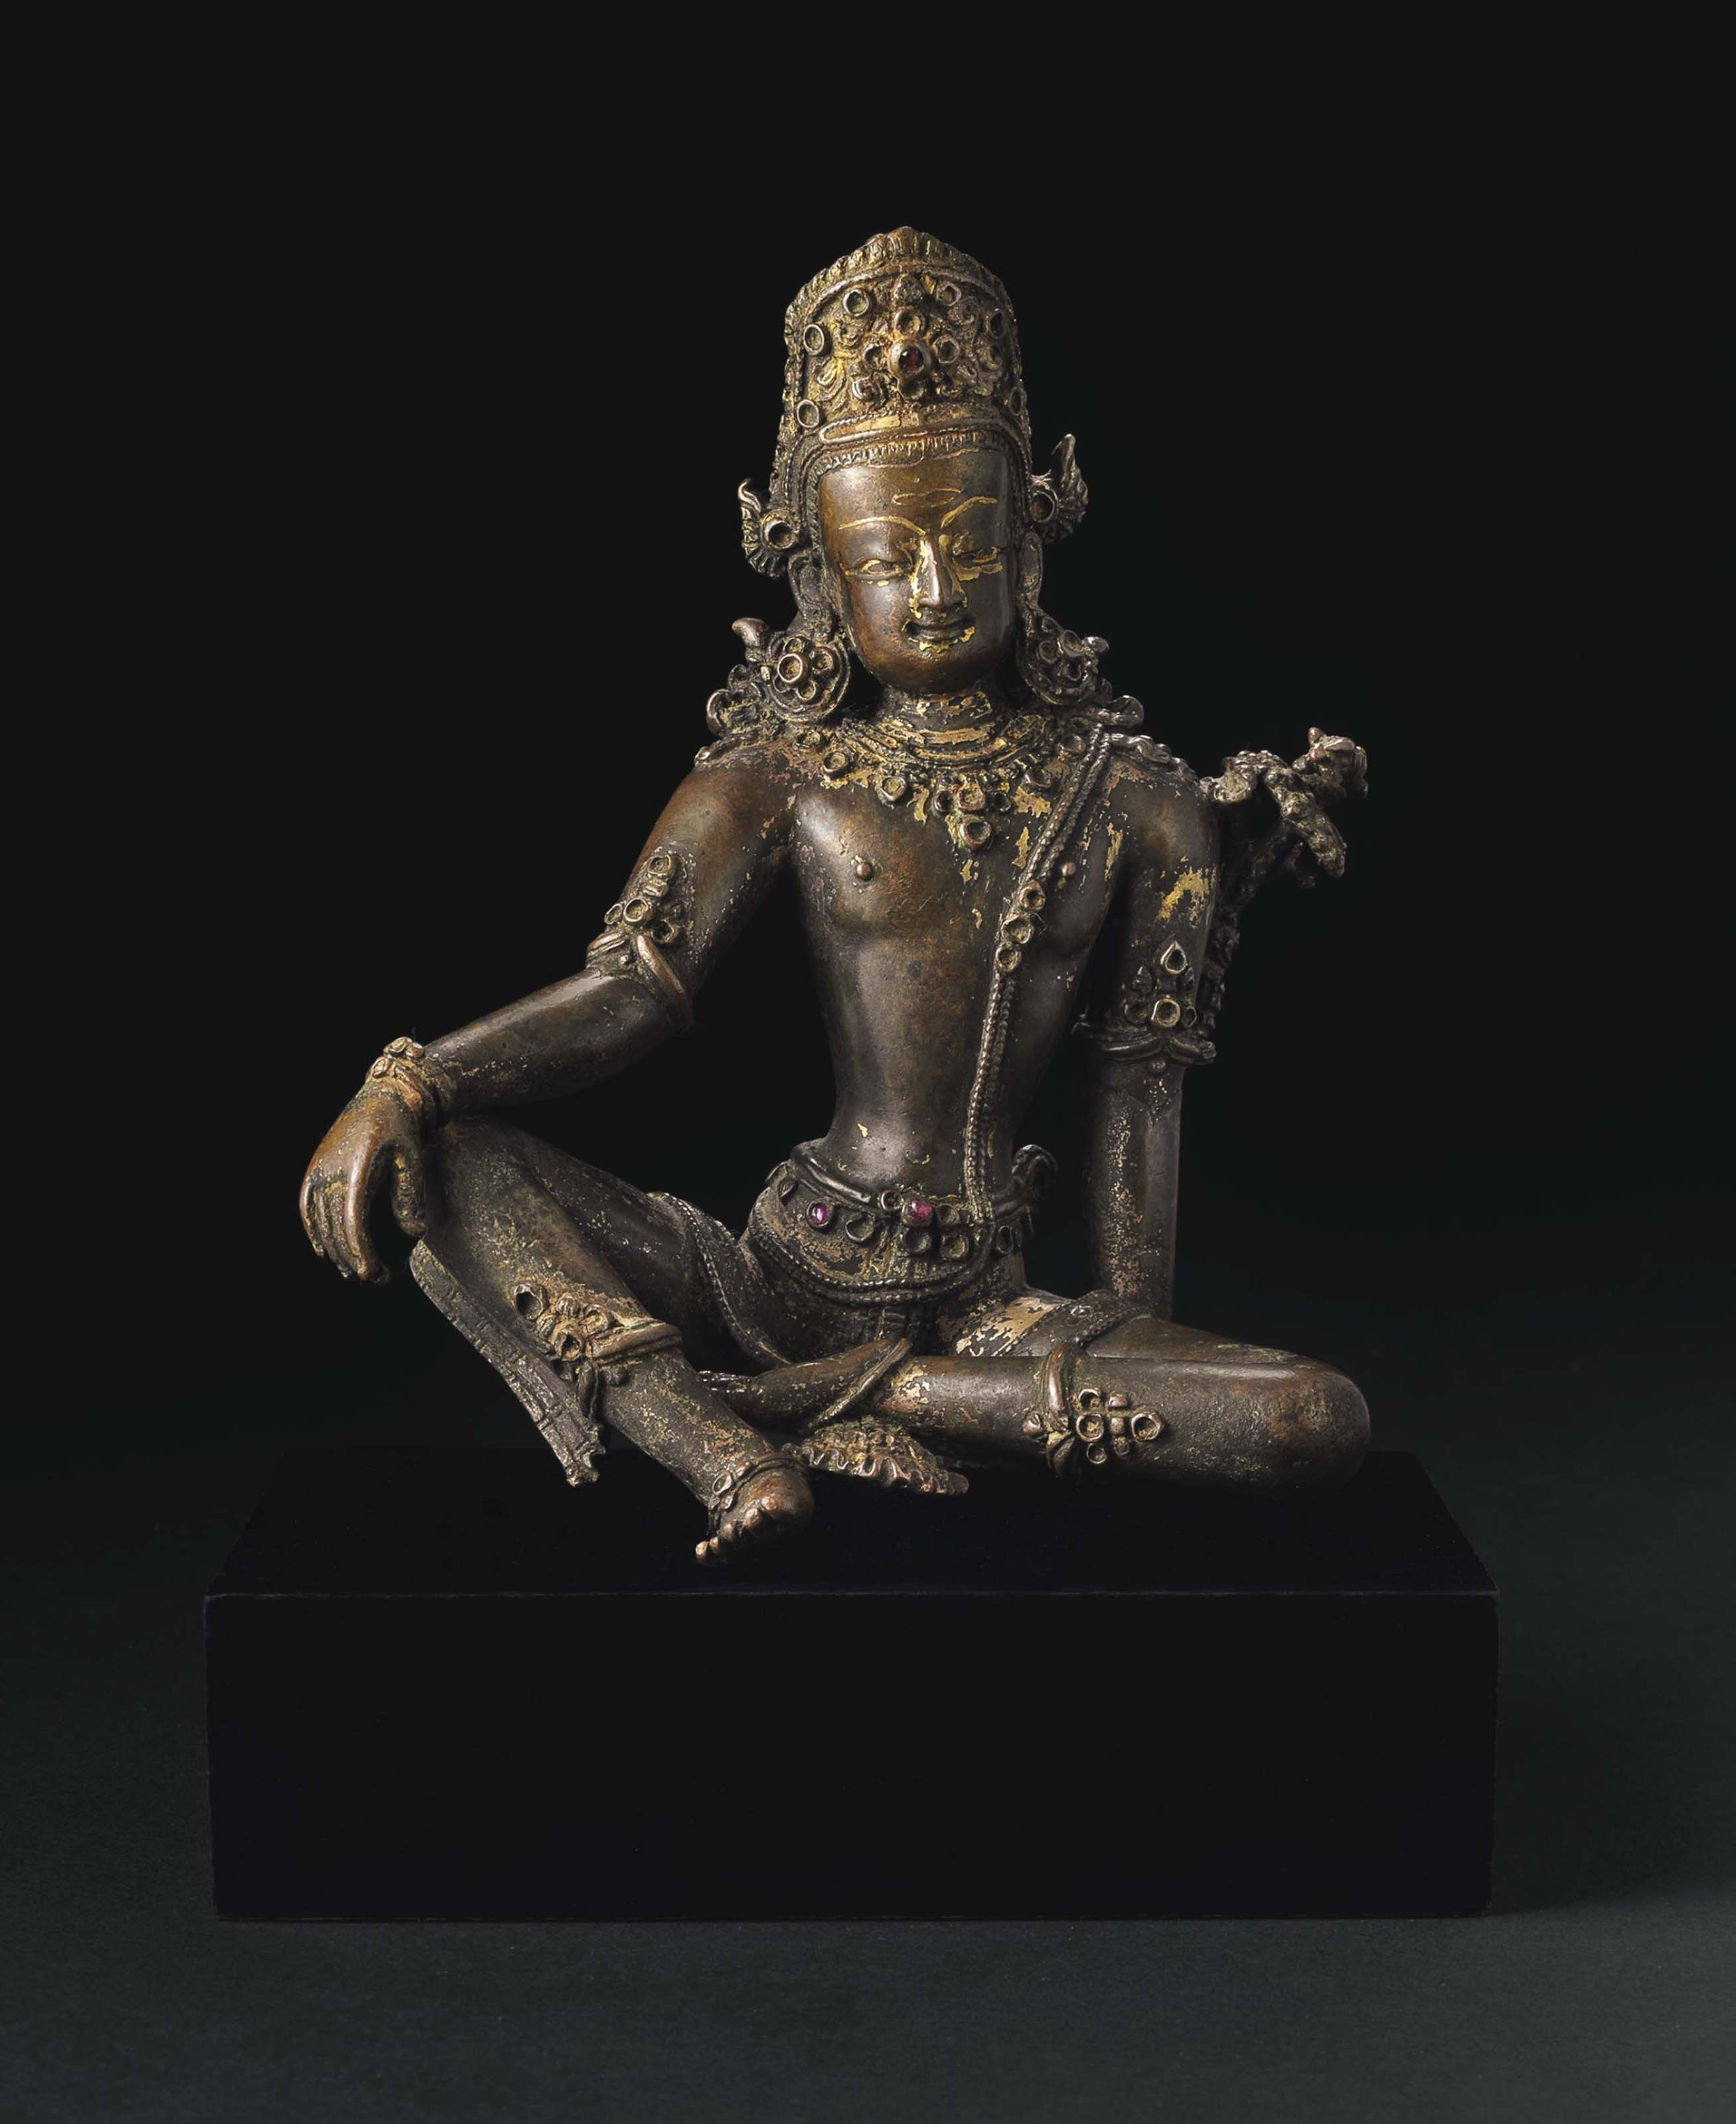 A bronze figure of Indra